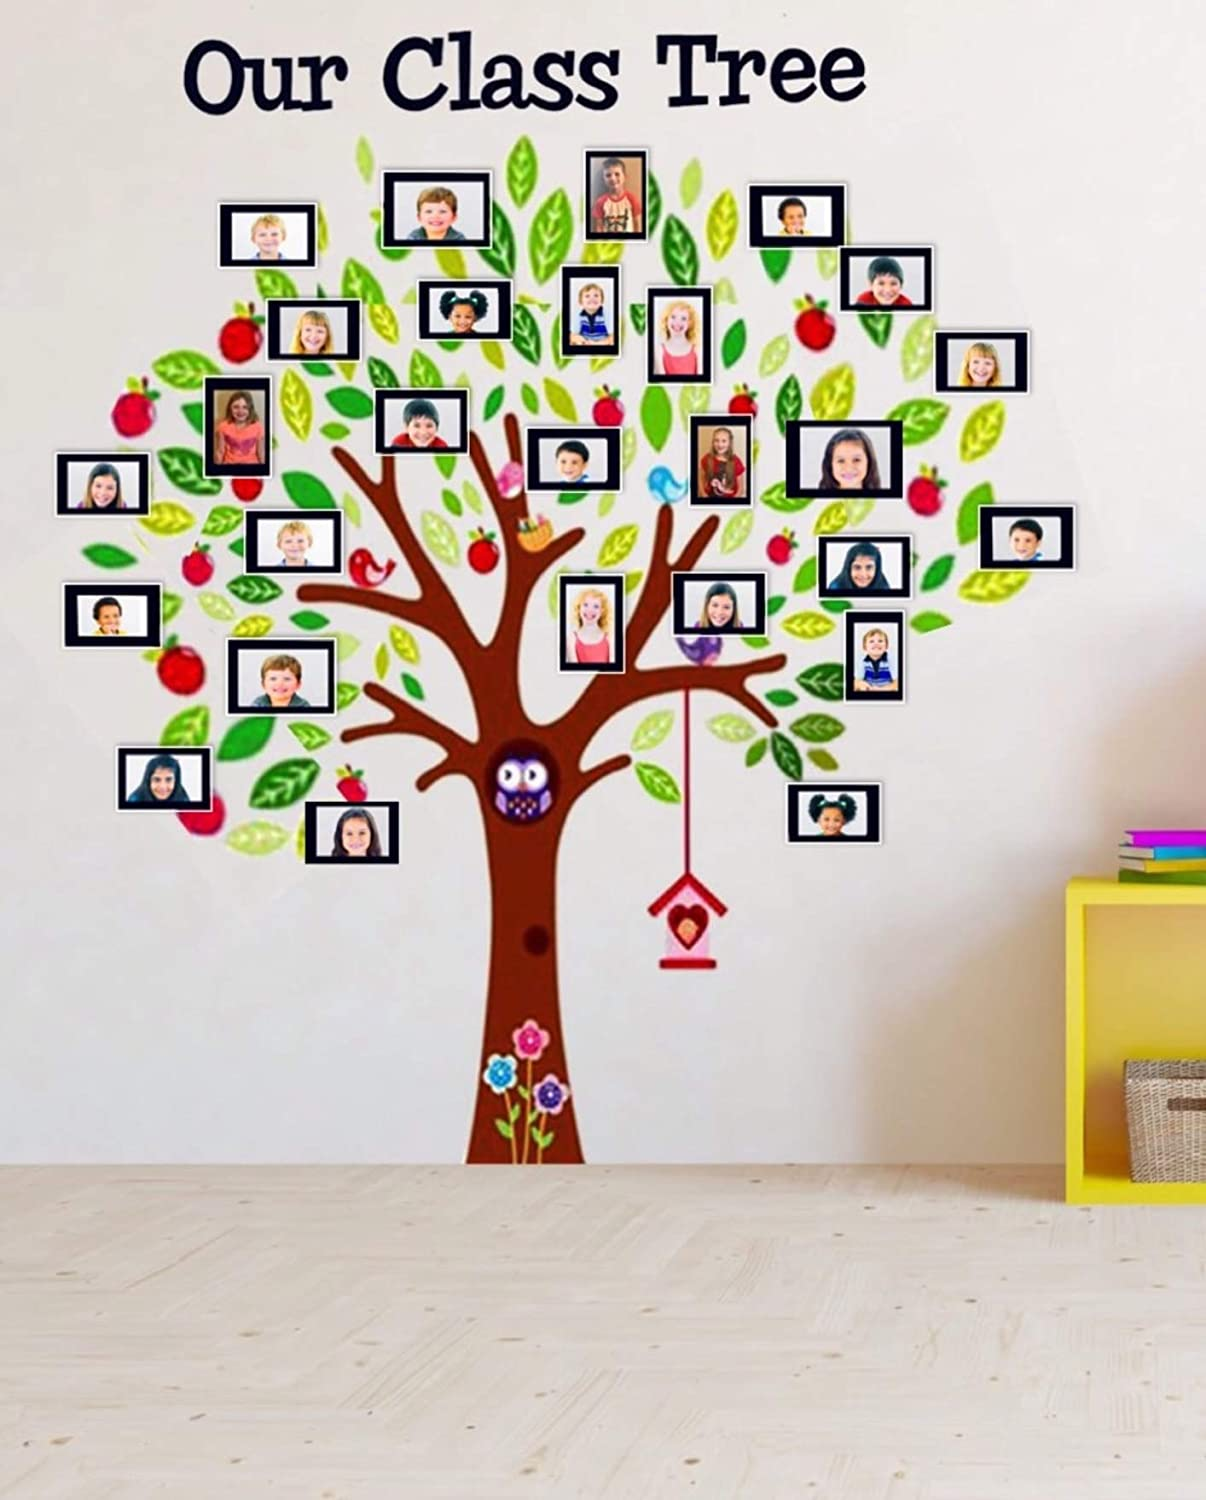 Classroom Decoration Class Tree Wall Decal Sticker with ...